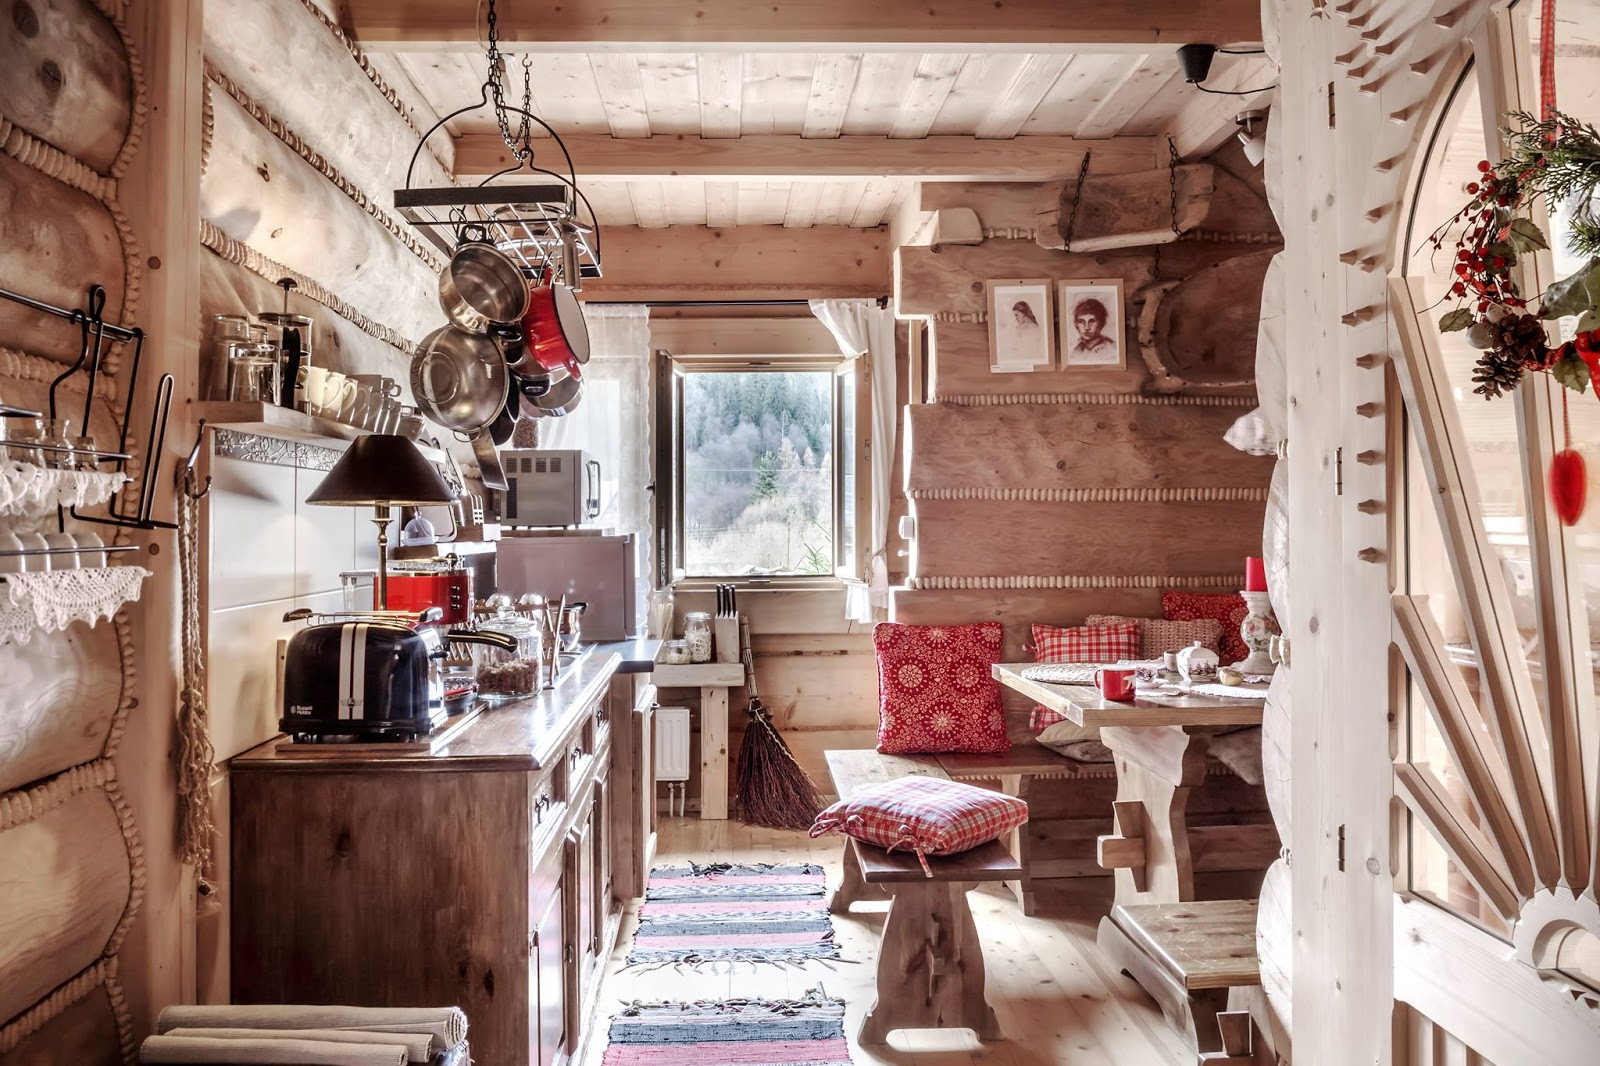 Adorable rustic kitchen